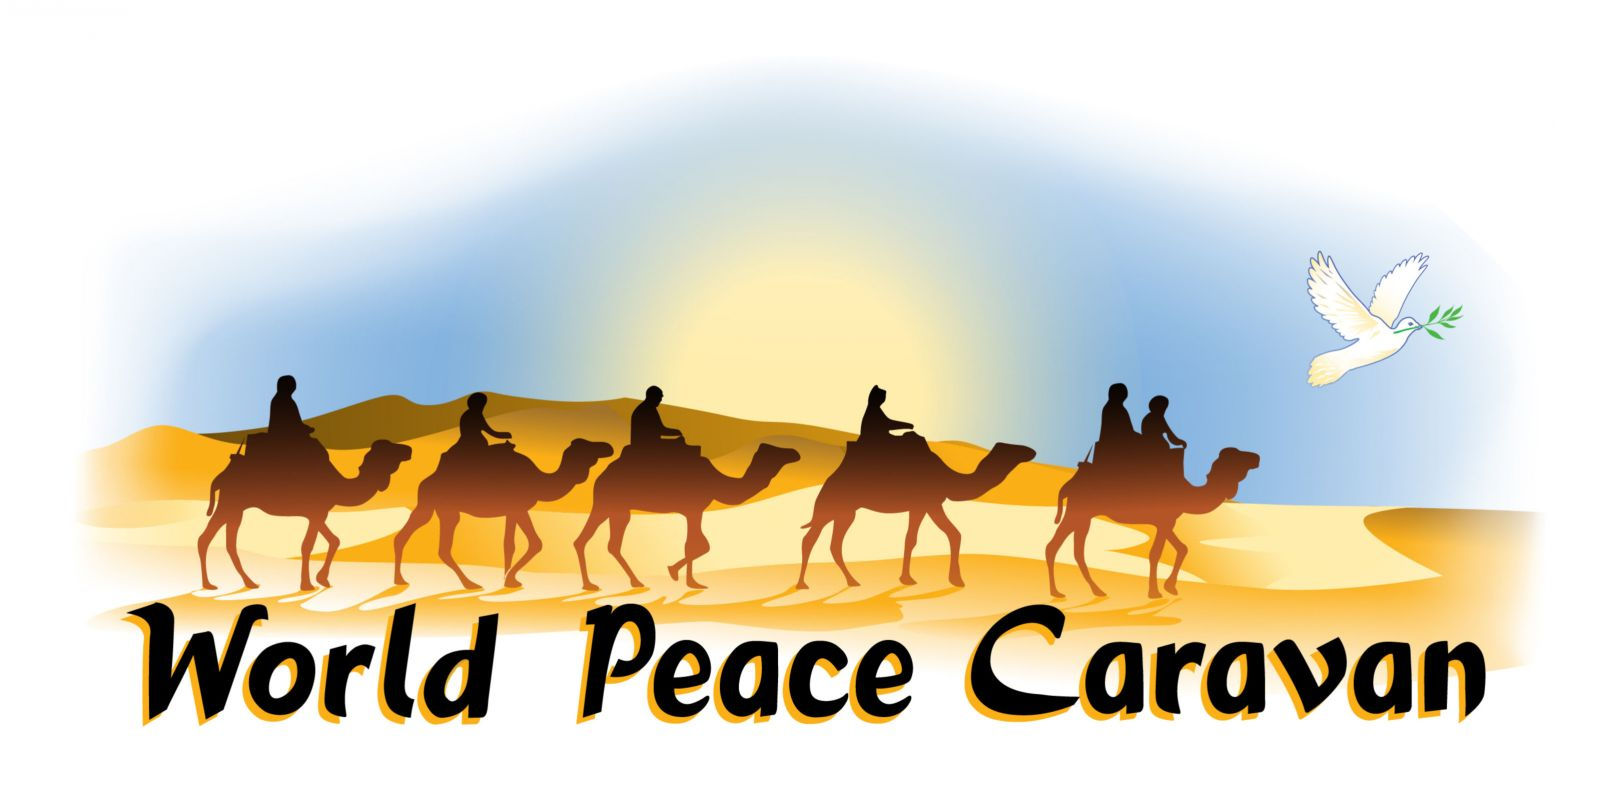 World Peace Caravan